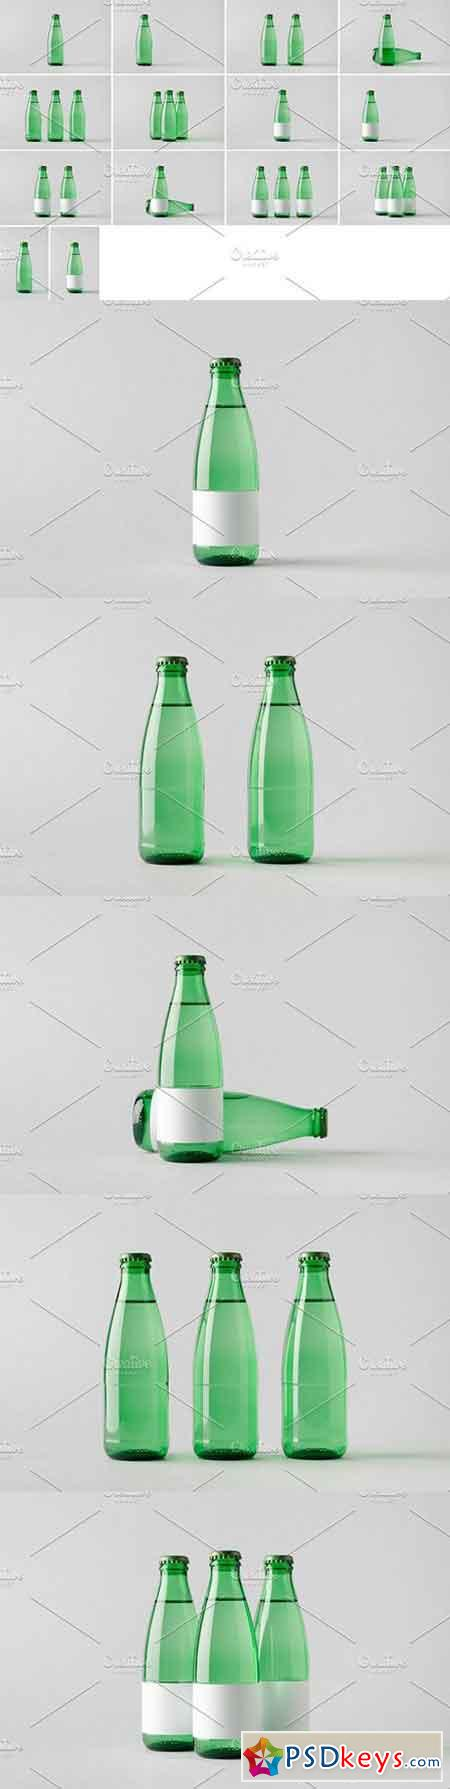 Water Bottle Mock-Up Photo Bundle 4 1329023